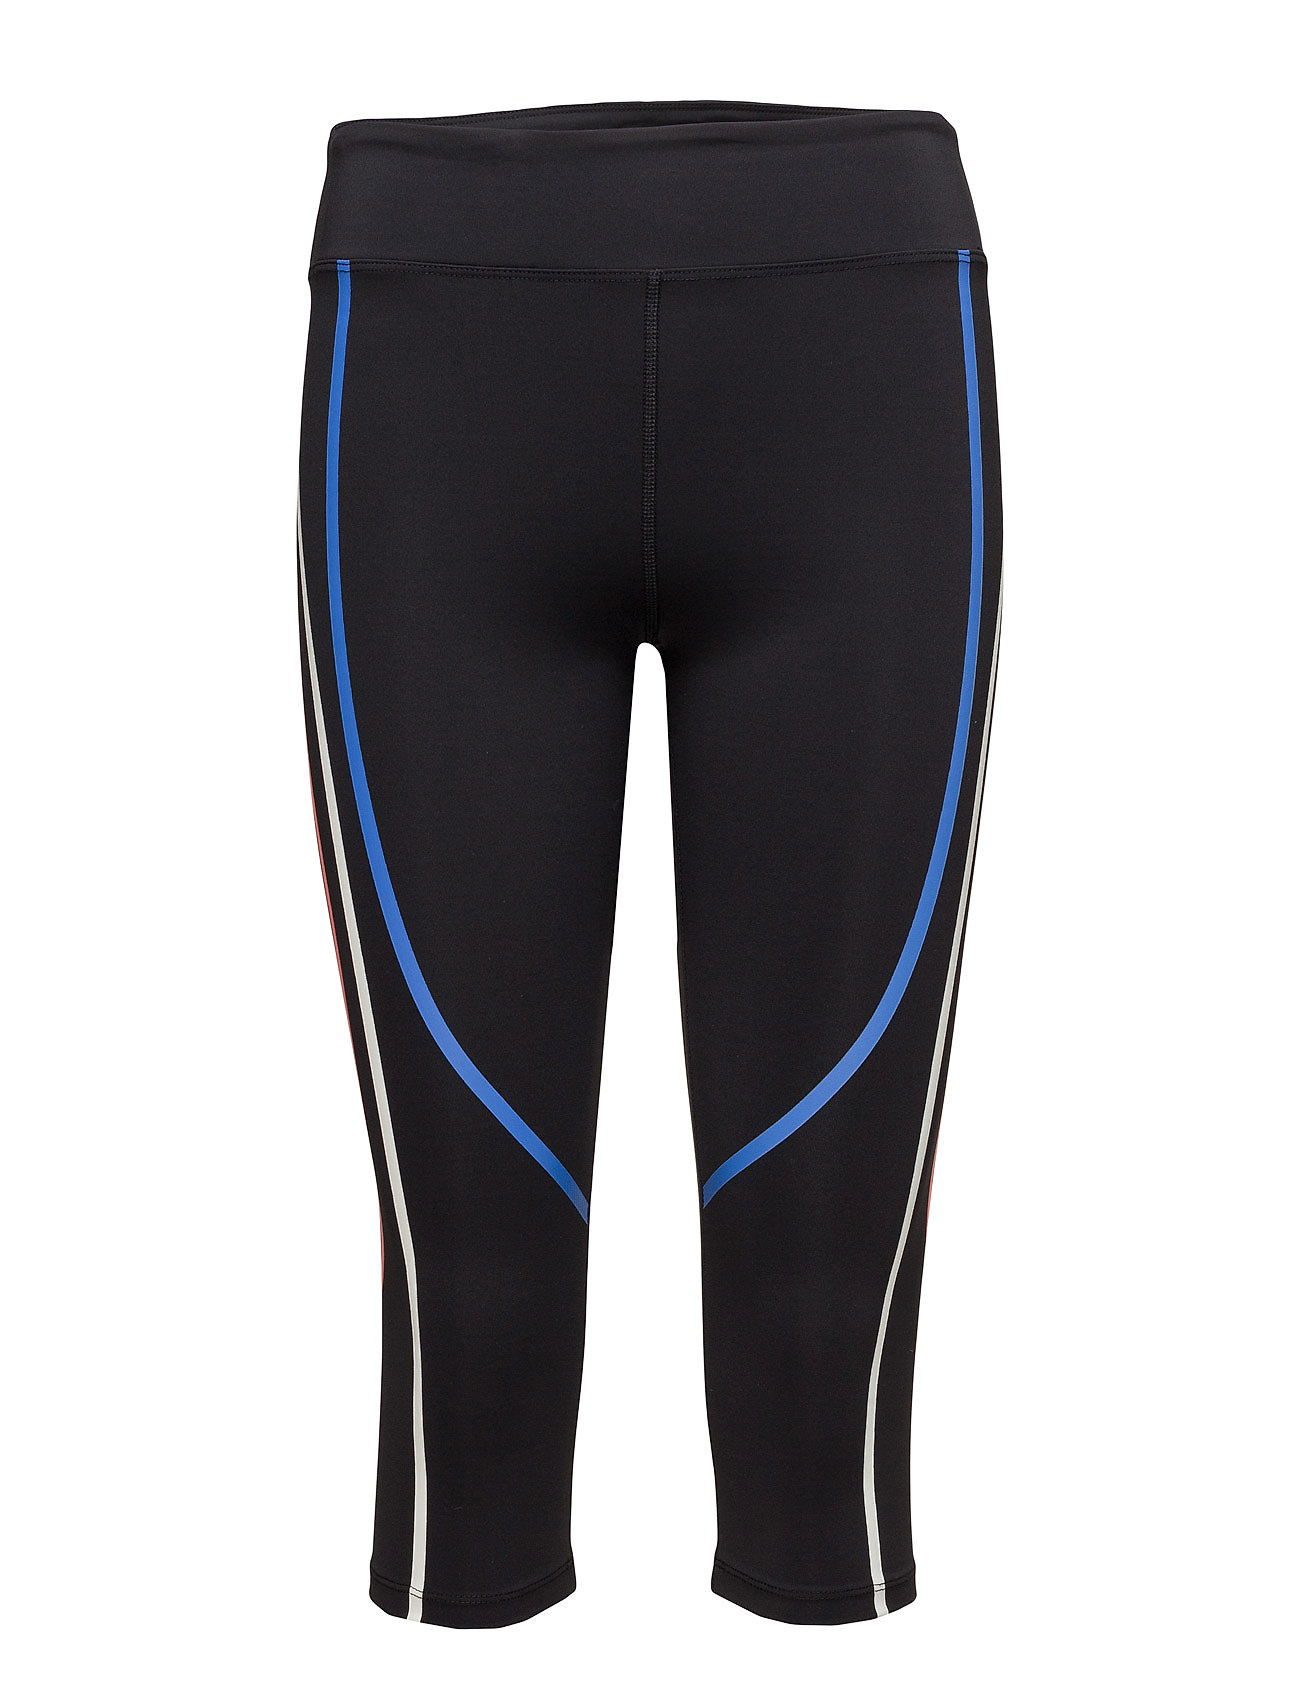 Slimming Effect Capri Leggings Mango Sports Sportstøj til Kvinder i